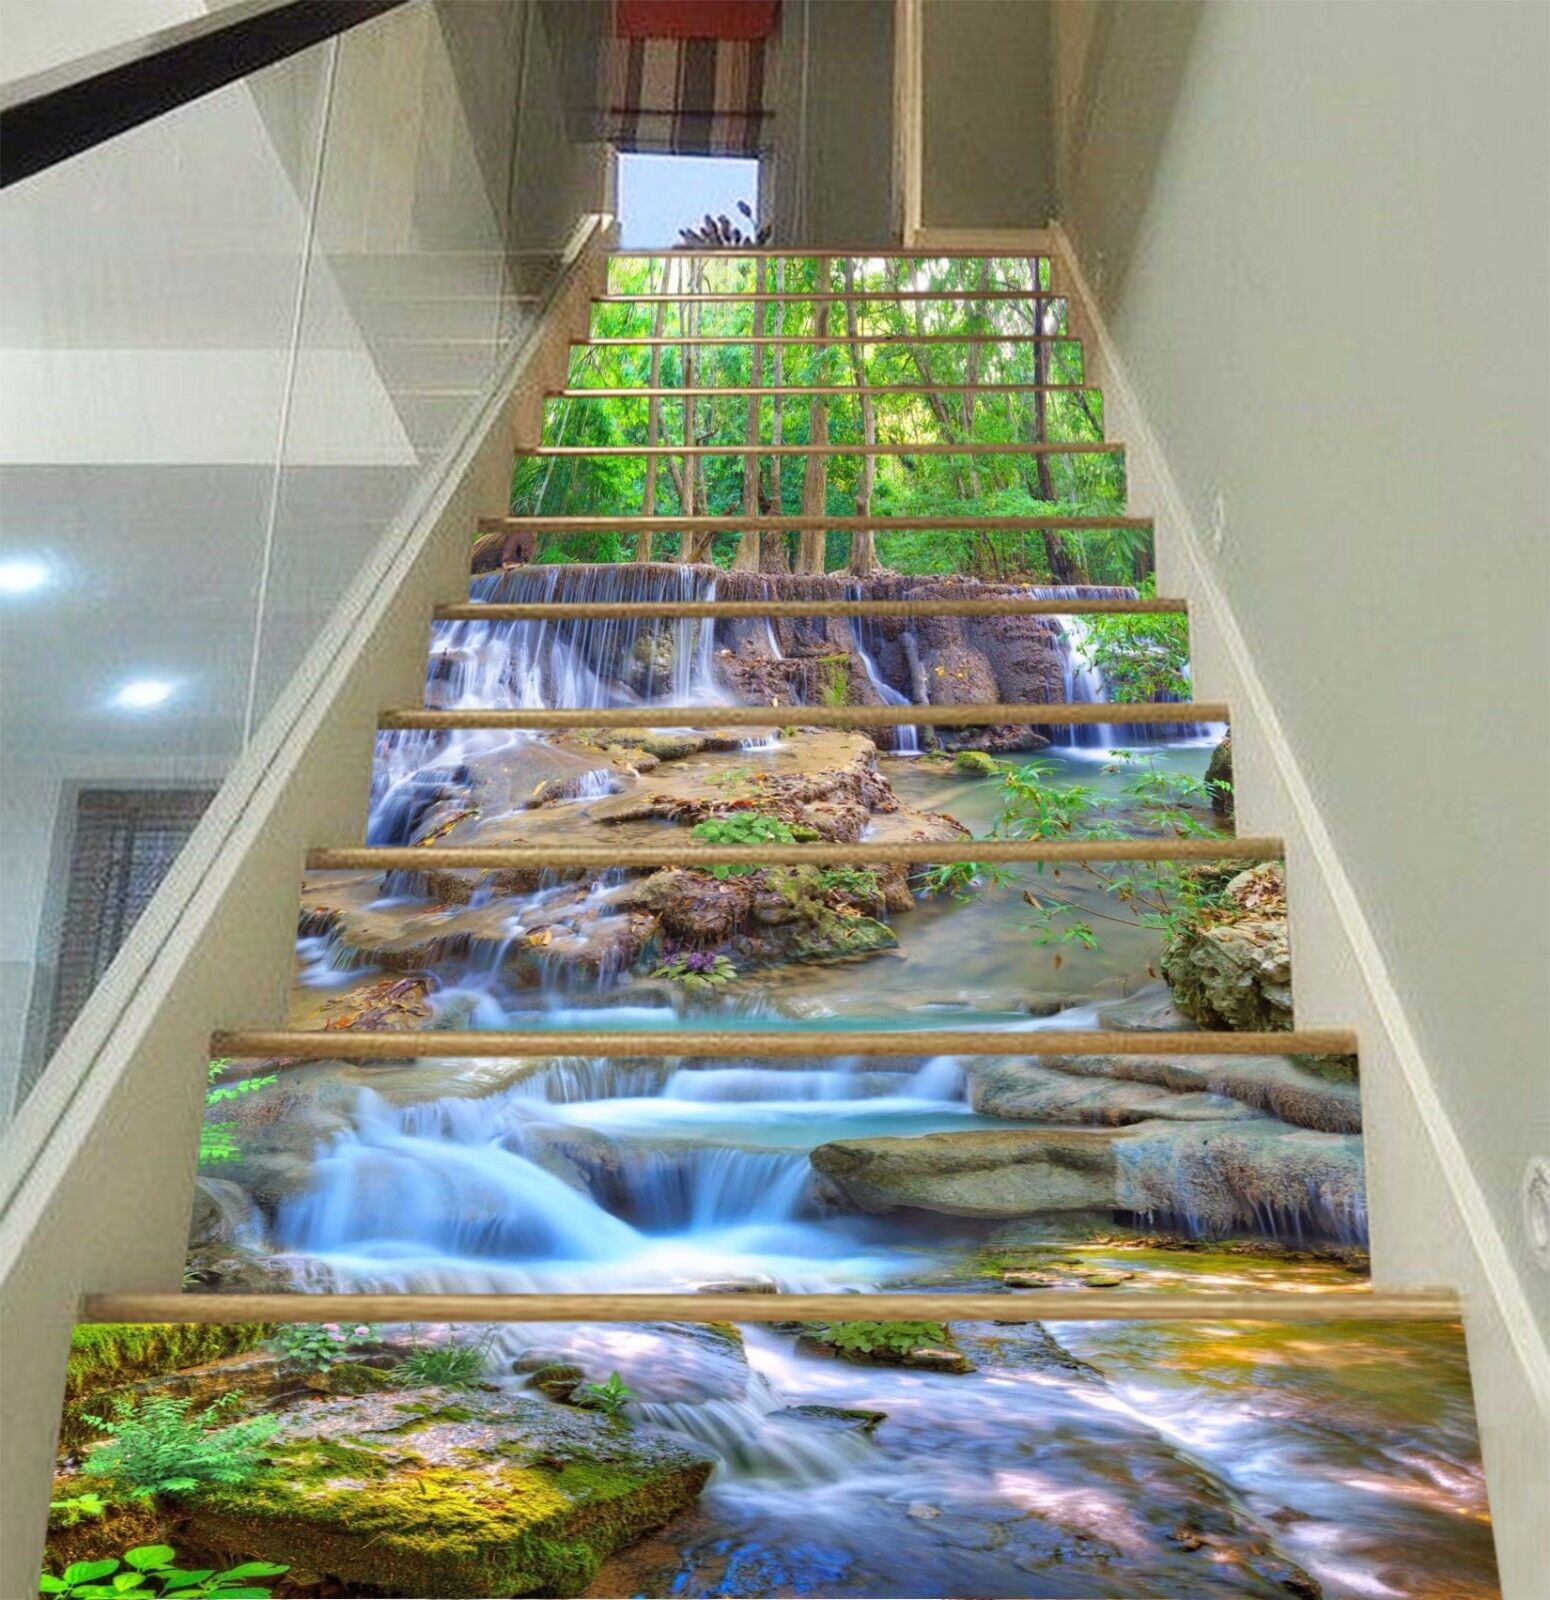 3D Forest Creeks 38 Stair Risers Decoration Photo Mural Vinyl Decal WandPapier UK